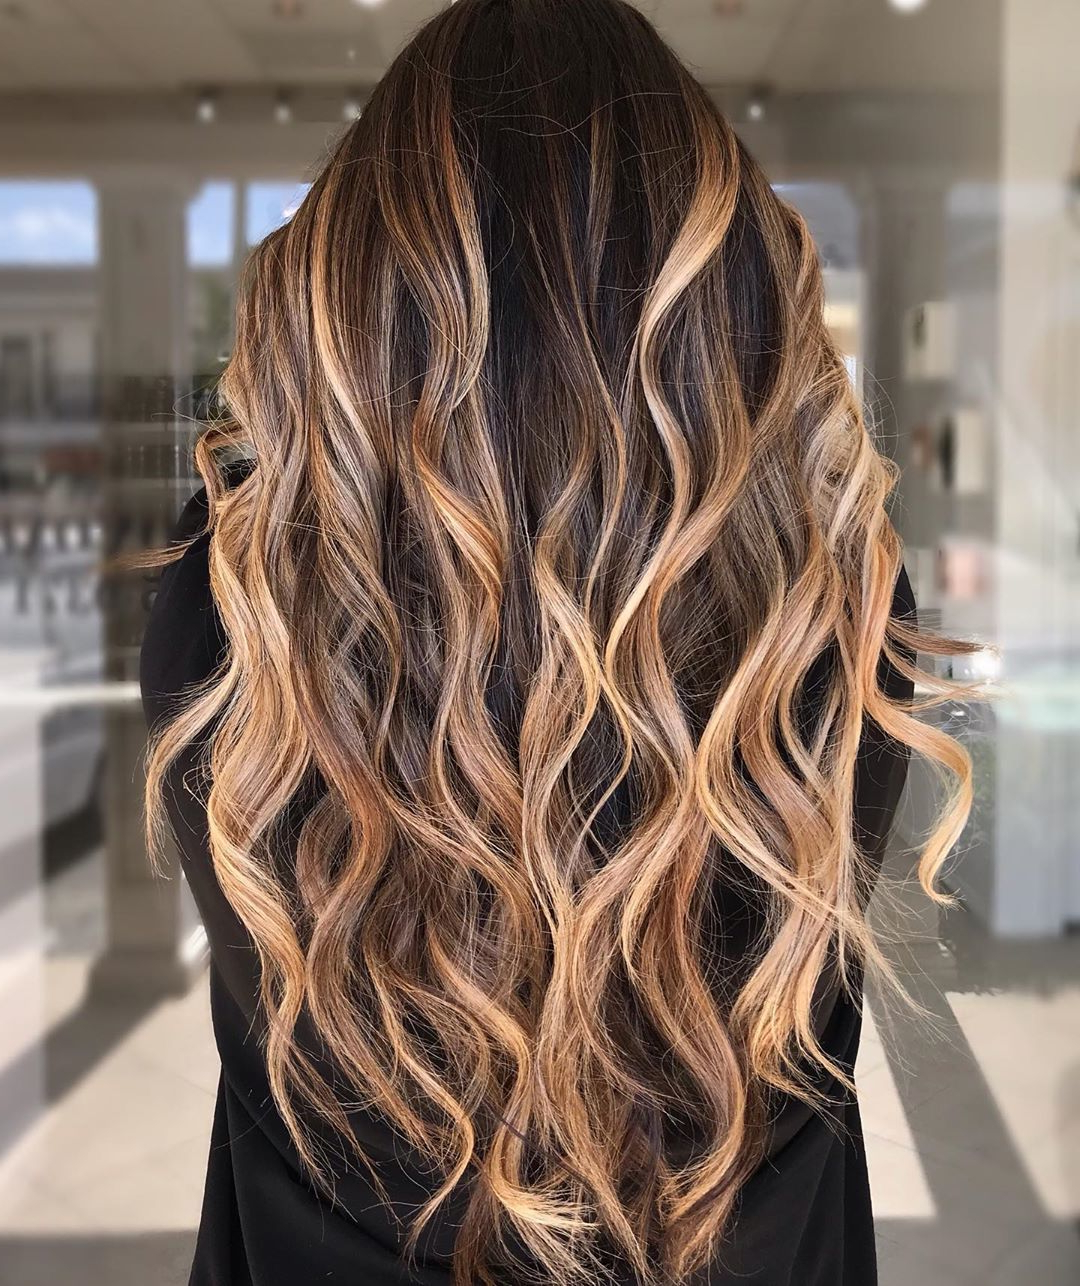 40 Best Brown Balayage Hair Colours For 2021 | All Things For Short Brown Balayage Hairstyles (View 3 of 20)